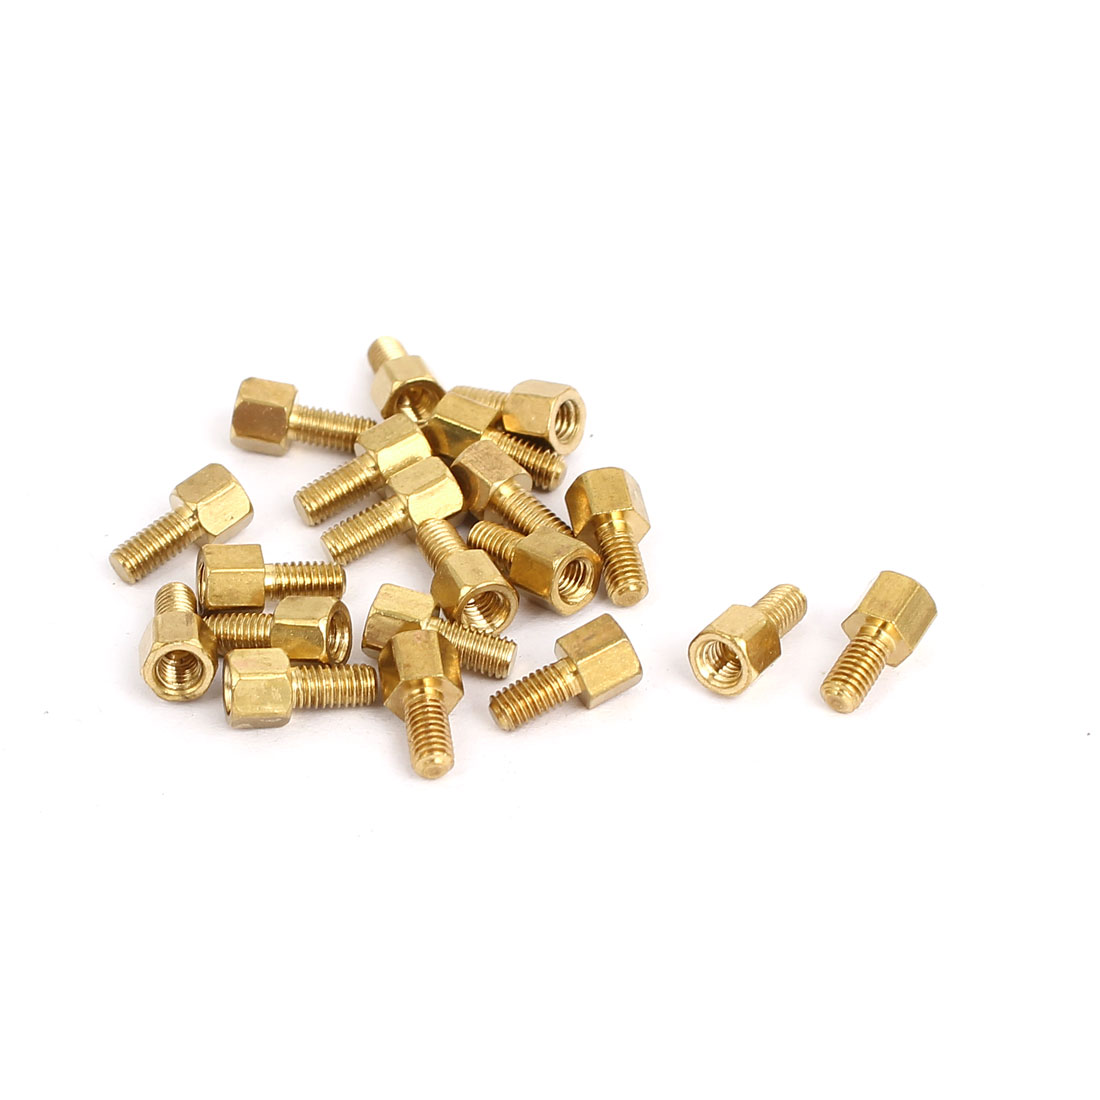 M3 Male to Female Thread Insulated Brass Standoff Hexagonal Spacer 4+6mm Long 20pcs